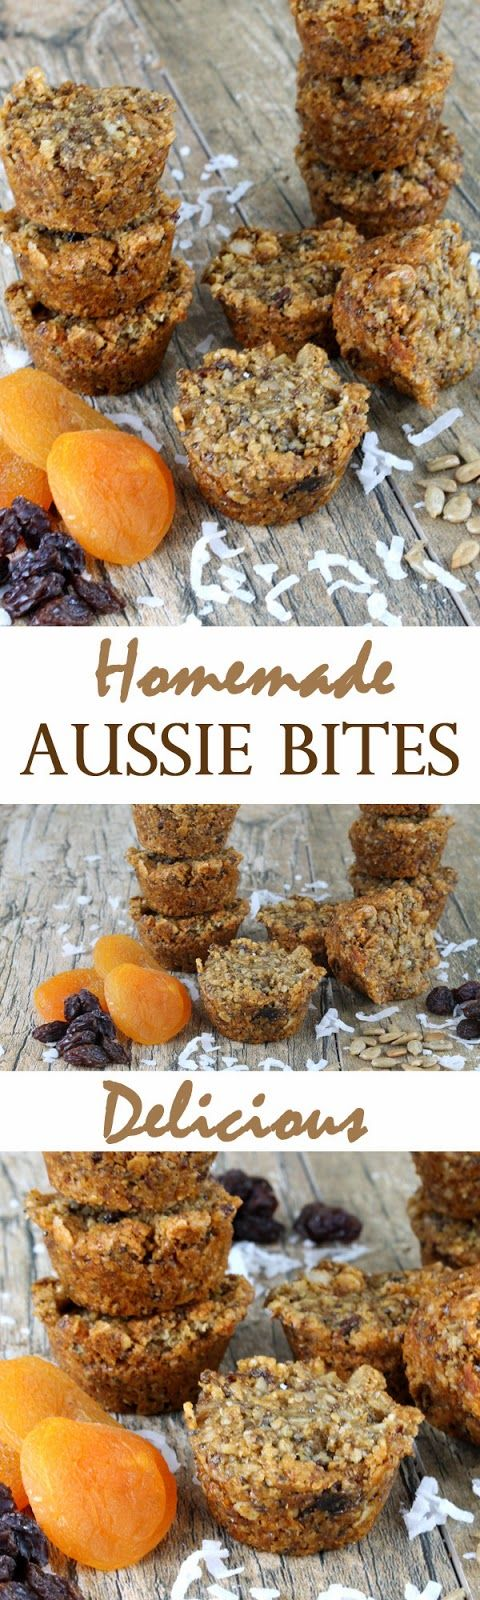 Homemade Aussie Bites *toasted the coconut and used coconut oil instead of canola oil...awesome!!